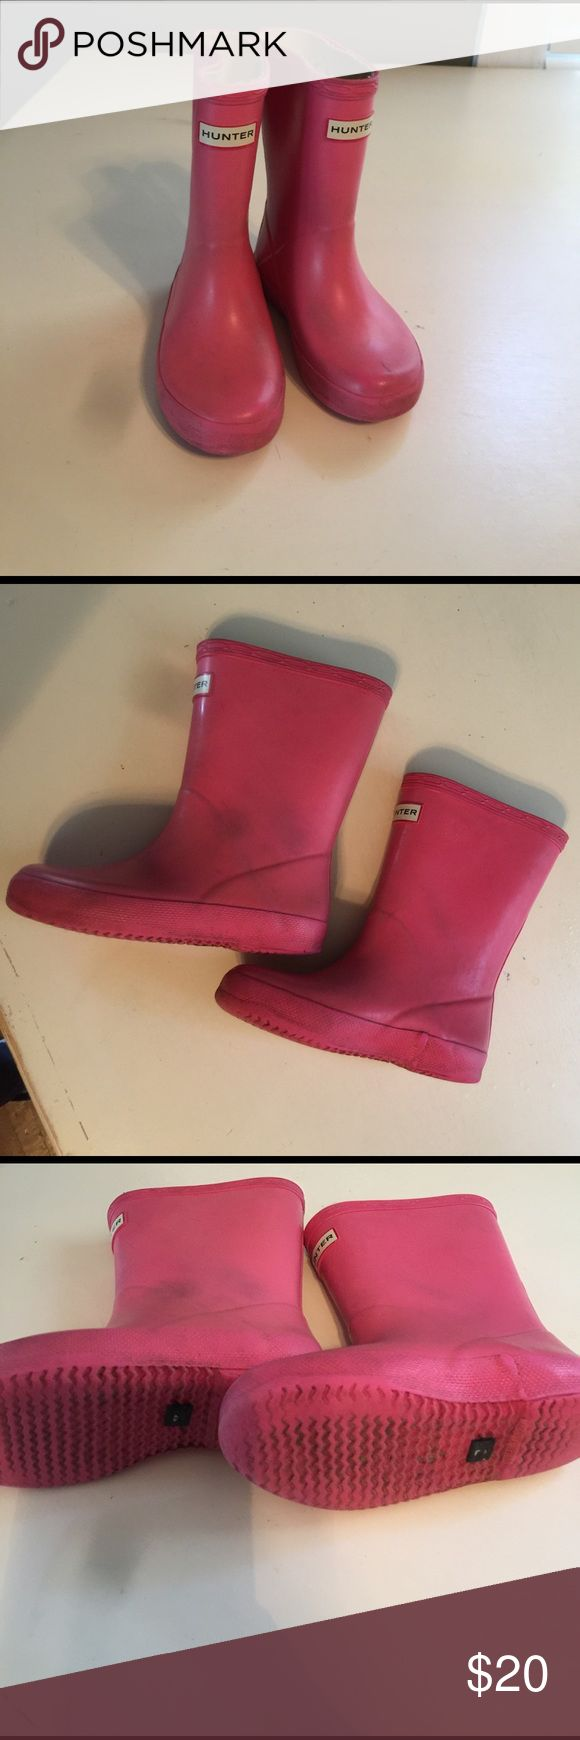 Girls Hunter Boots EUC boots. Worn with a lot of love! Hunter Boots Shoes Winter & Rain Boots